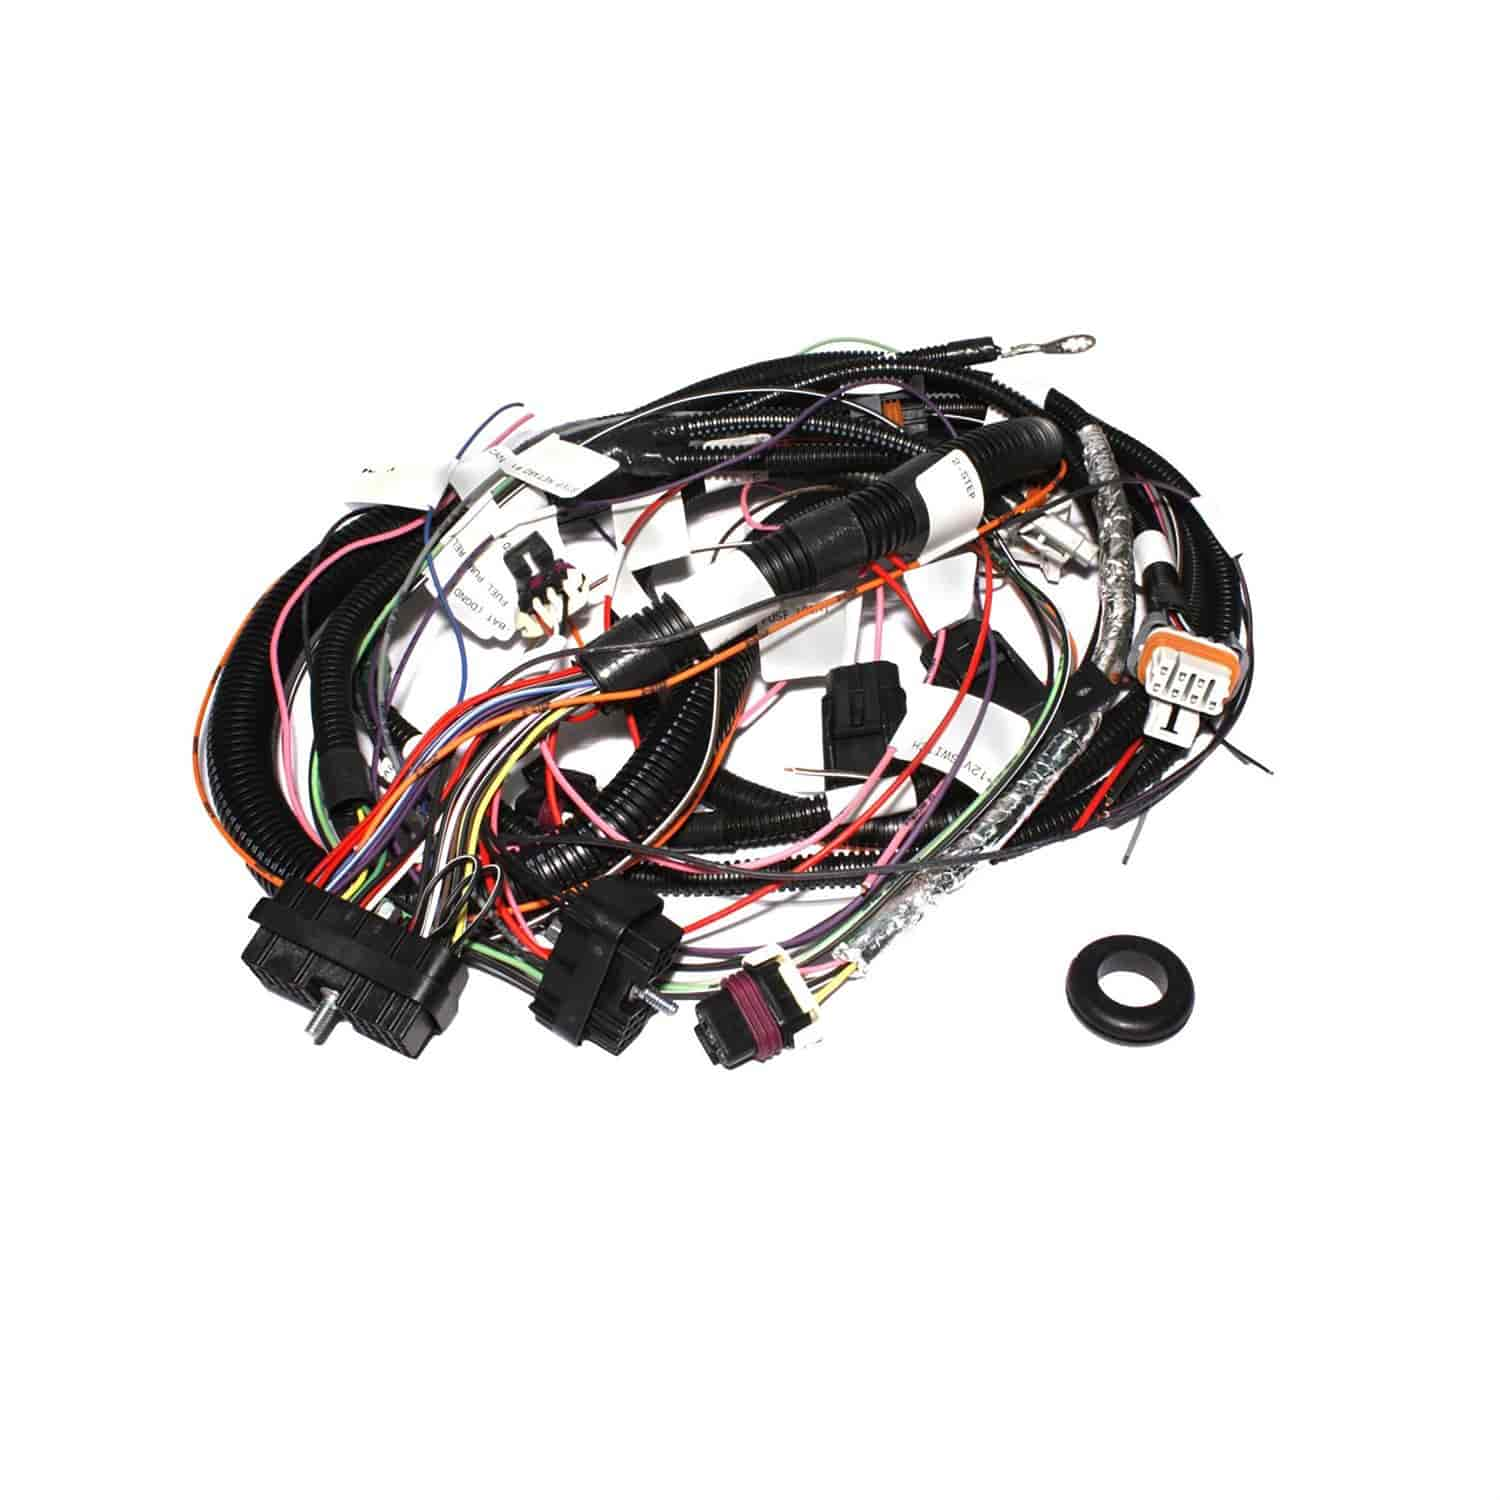 244 301972 fast 301972 xim fuel injection wiring harness for ls1 jegs 1986 Toyota SR5 Fuel Injector Wire Harness at mifinder.co